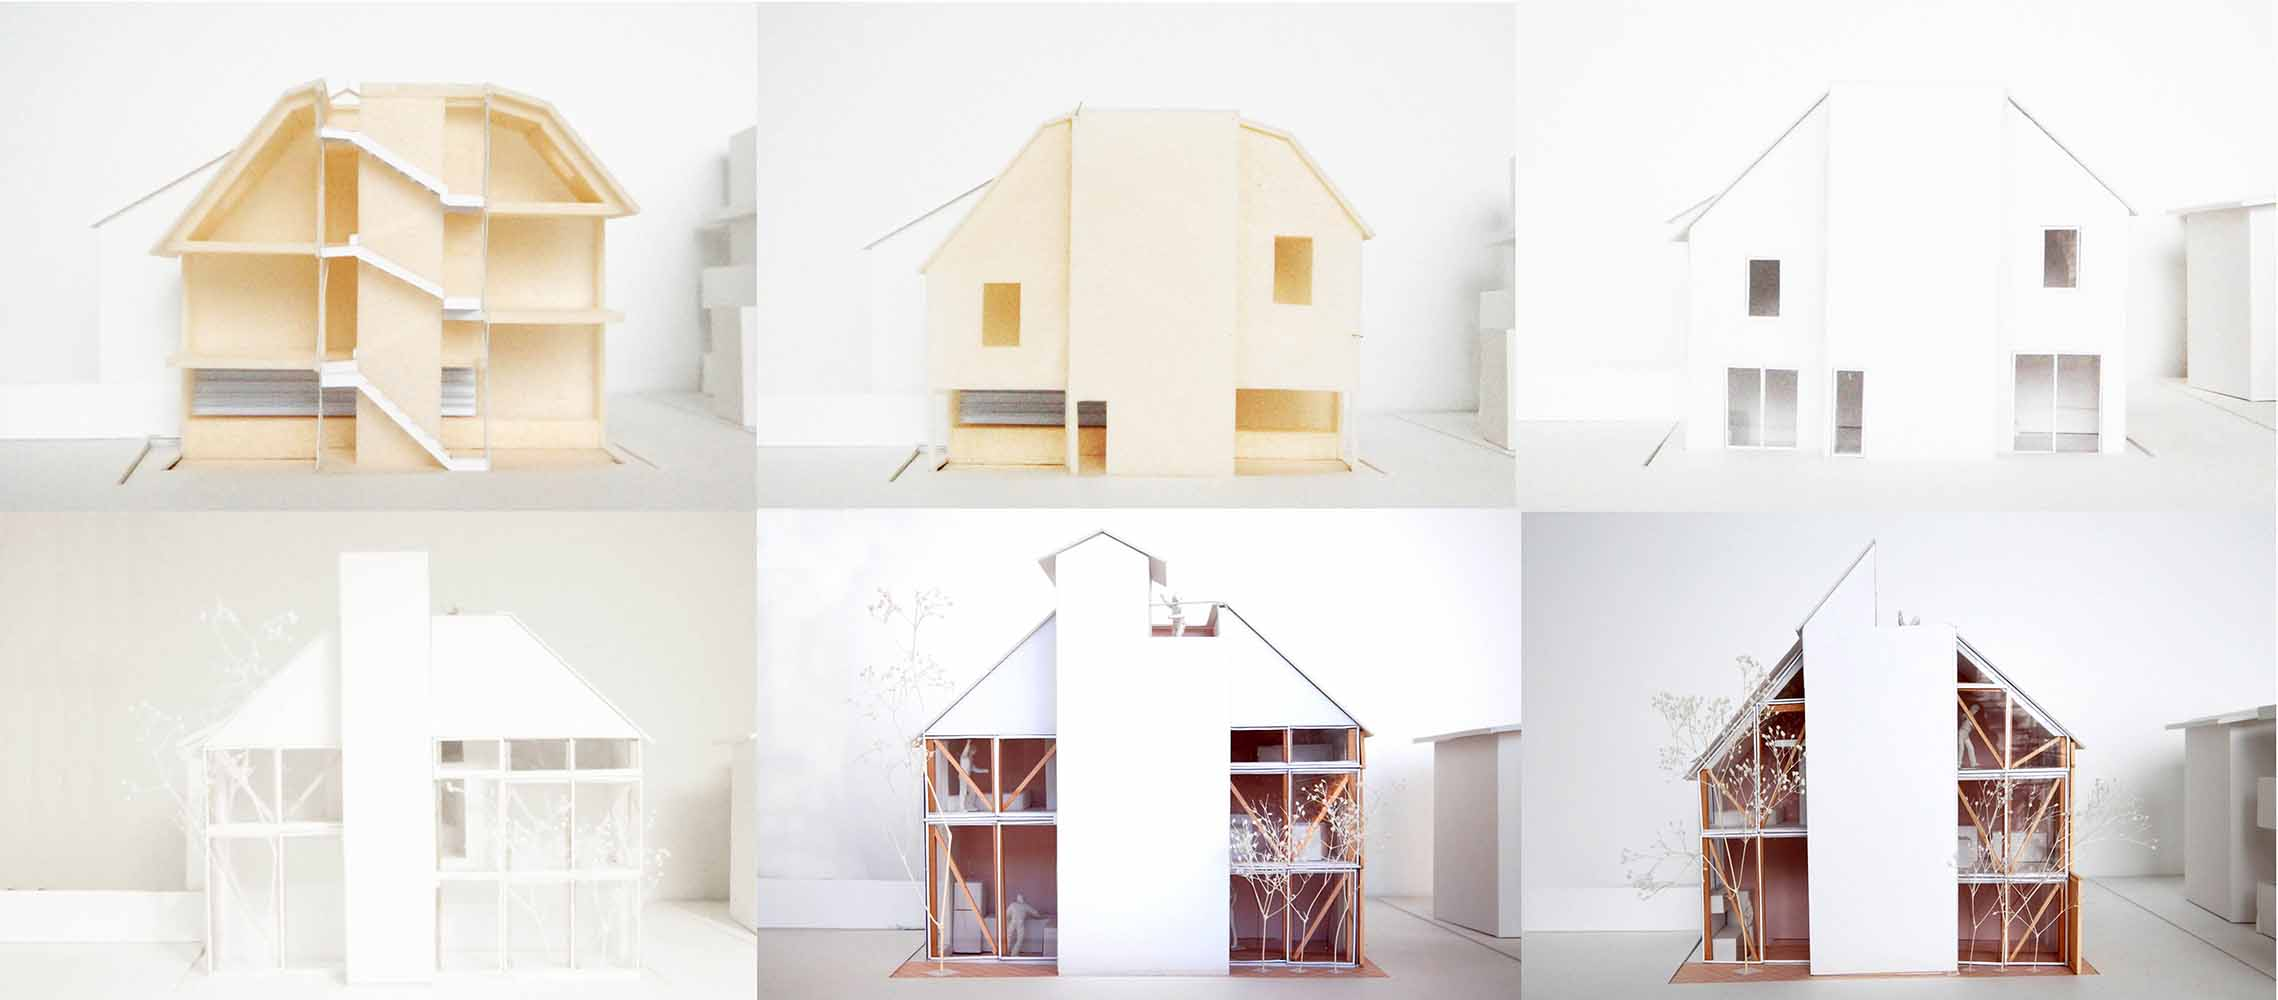 Atelier bow wow andrew choptiany for Atelier 5 architecture